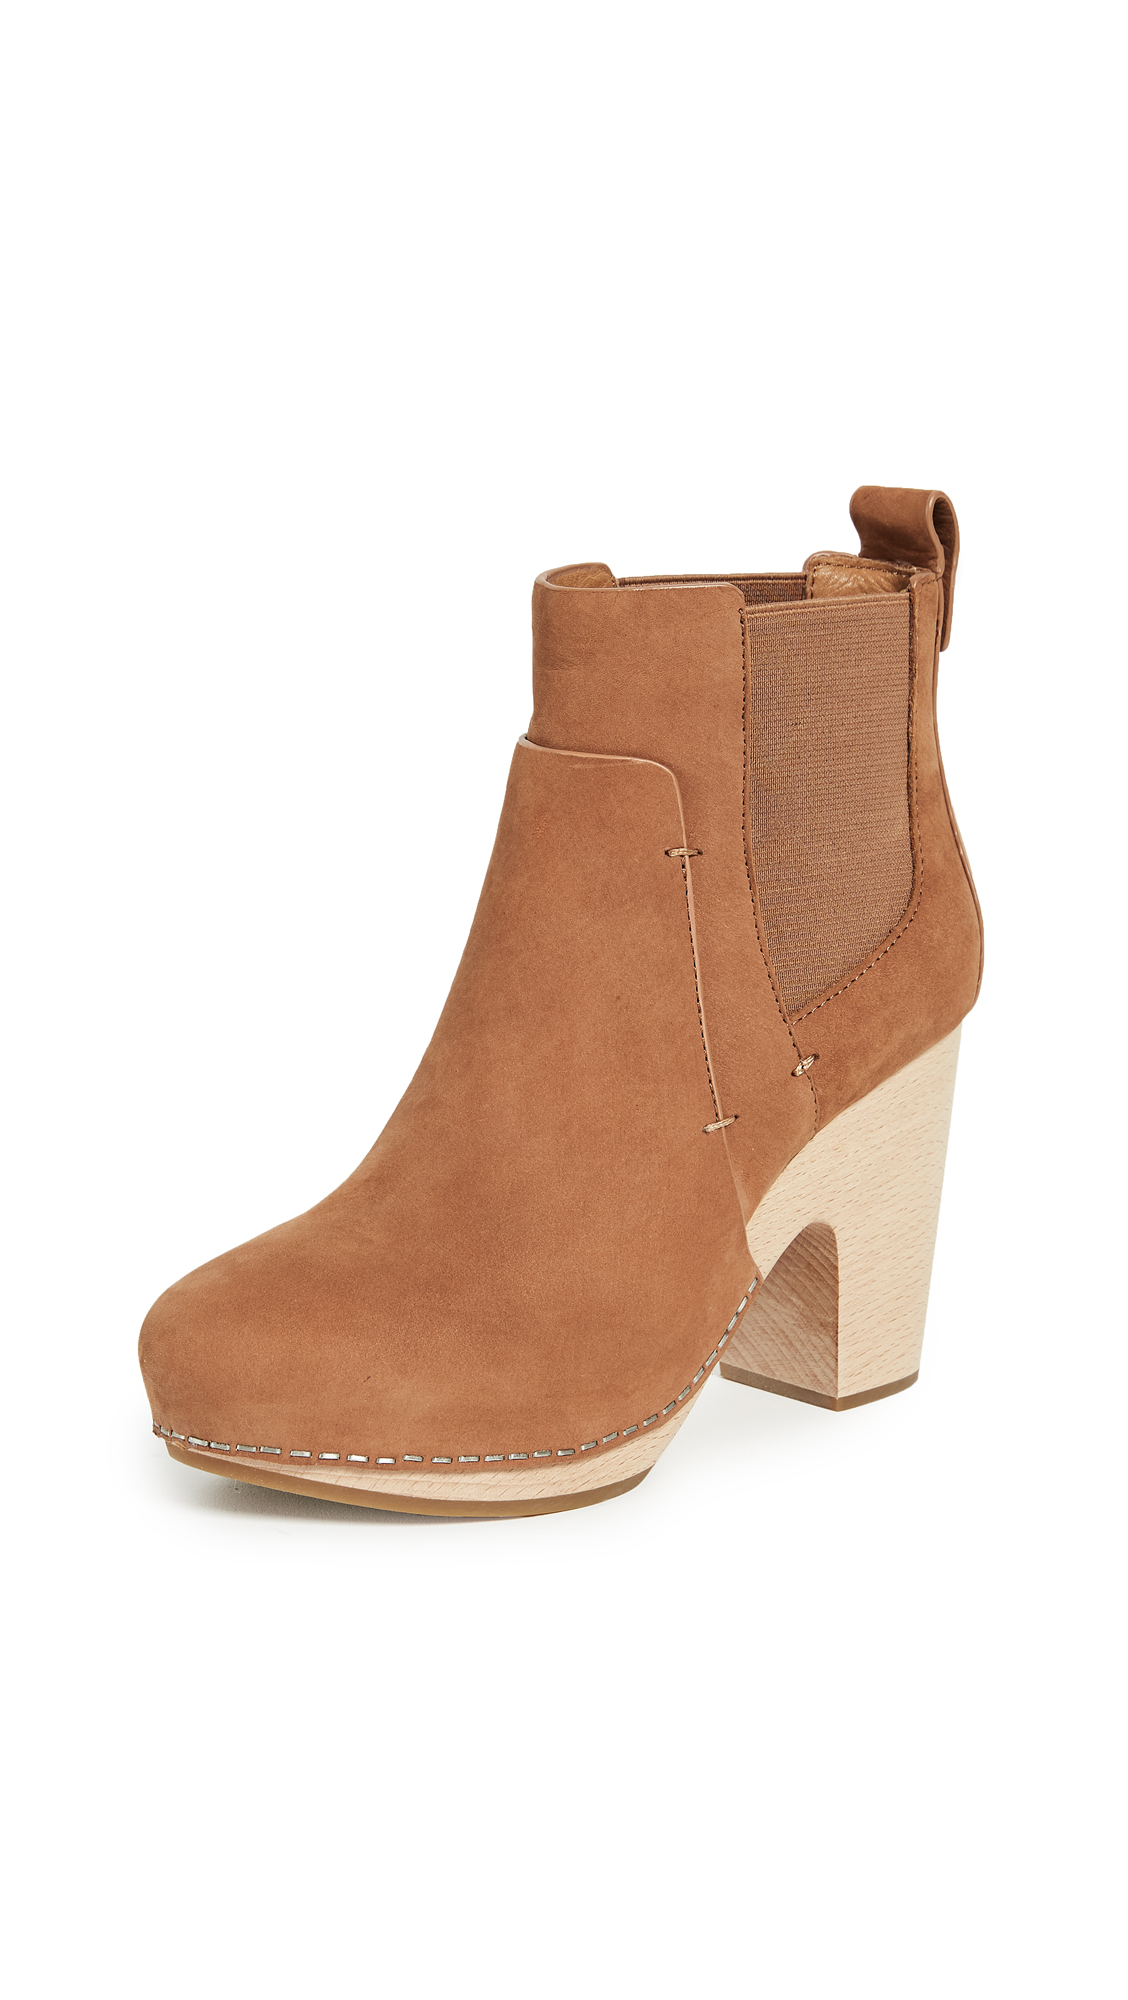 Veronica Beard Camila Booties - Cognac